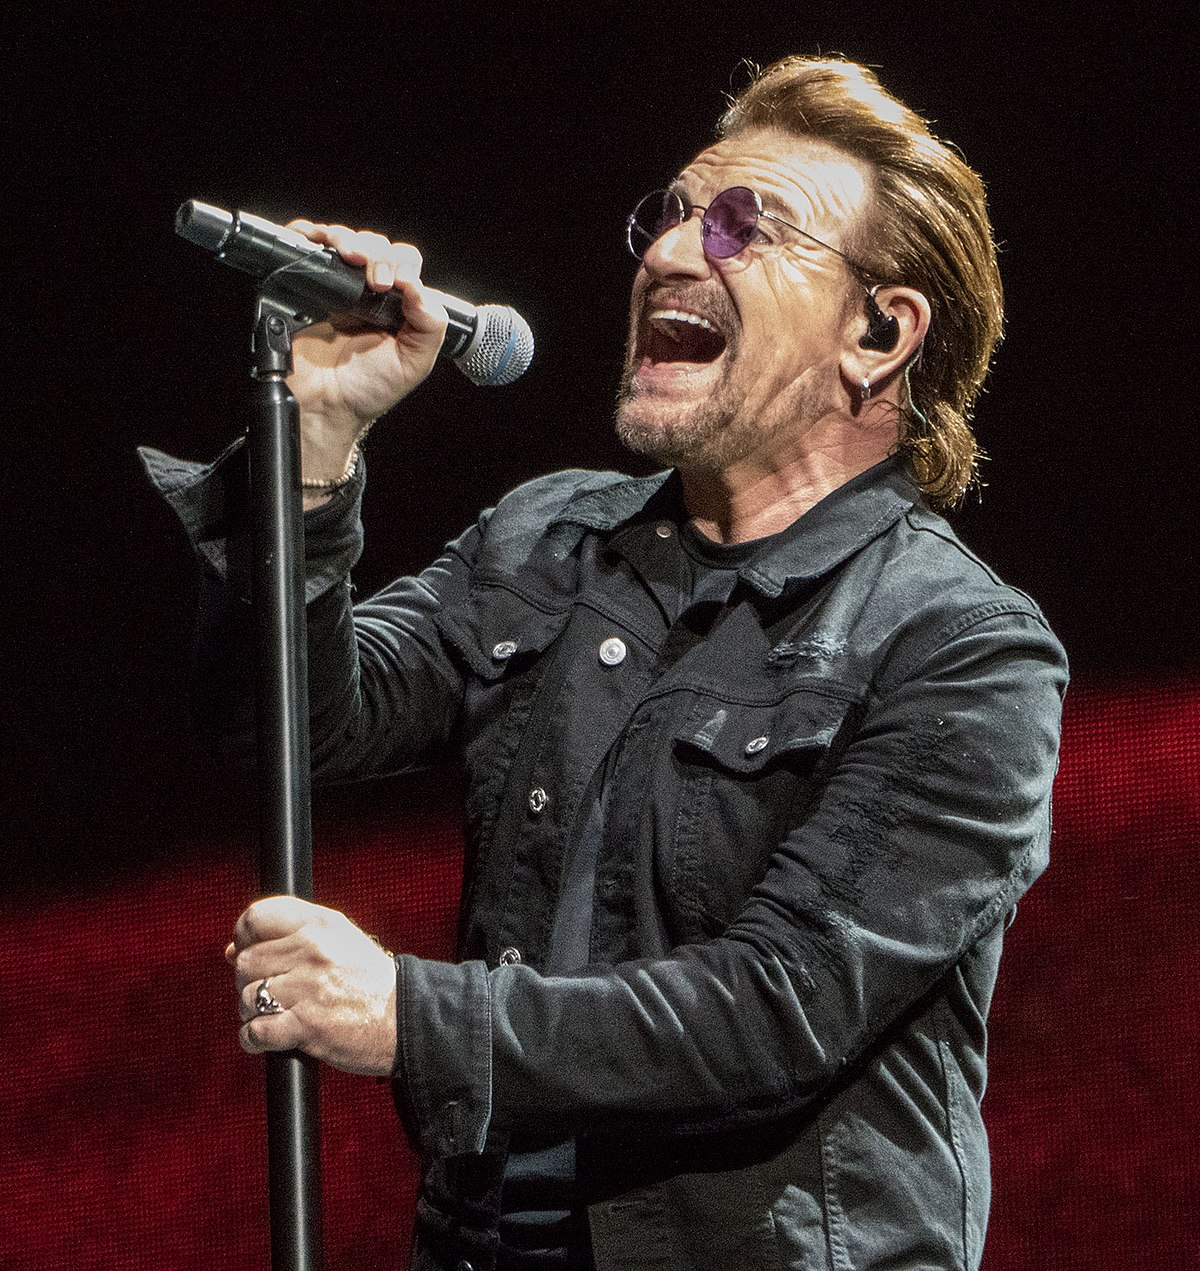 3 22 12 Things You Might Not Have Realised About Bono